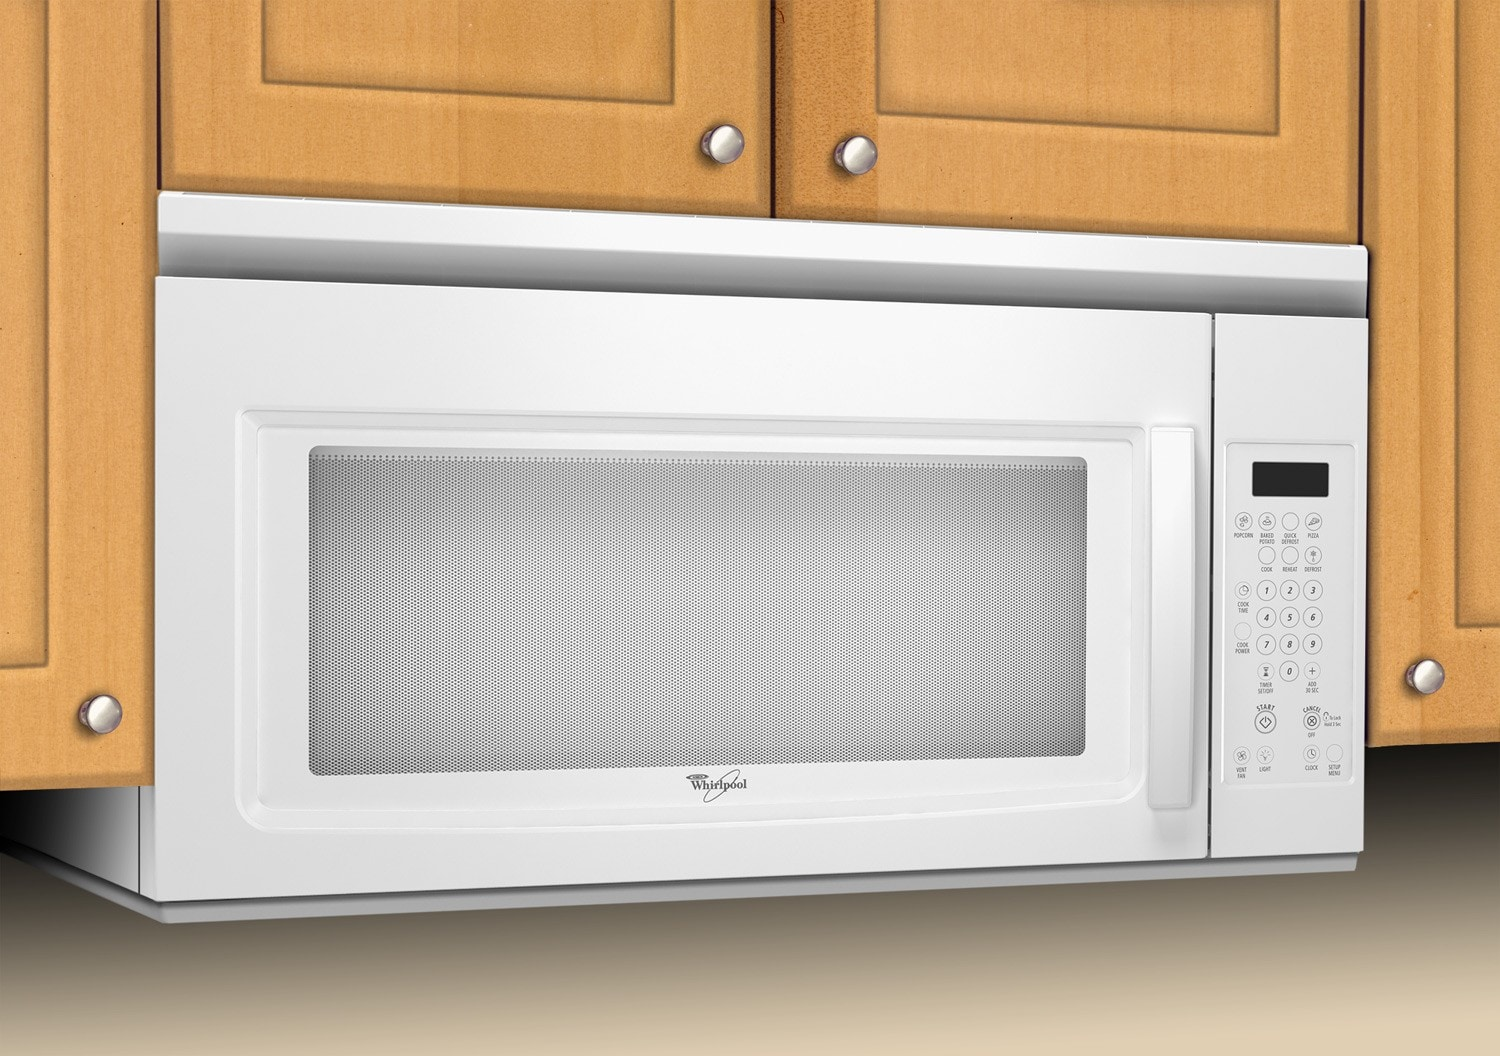 brand new whirlpool microwave hood combo for sale. Black Bedroom Furniture Sets. Home Design Ideas